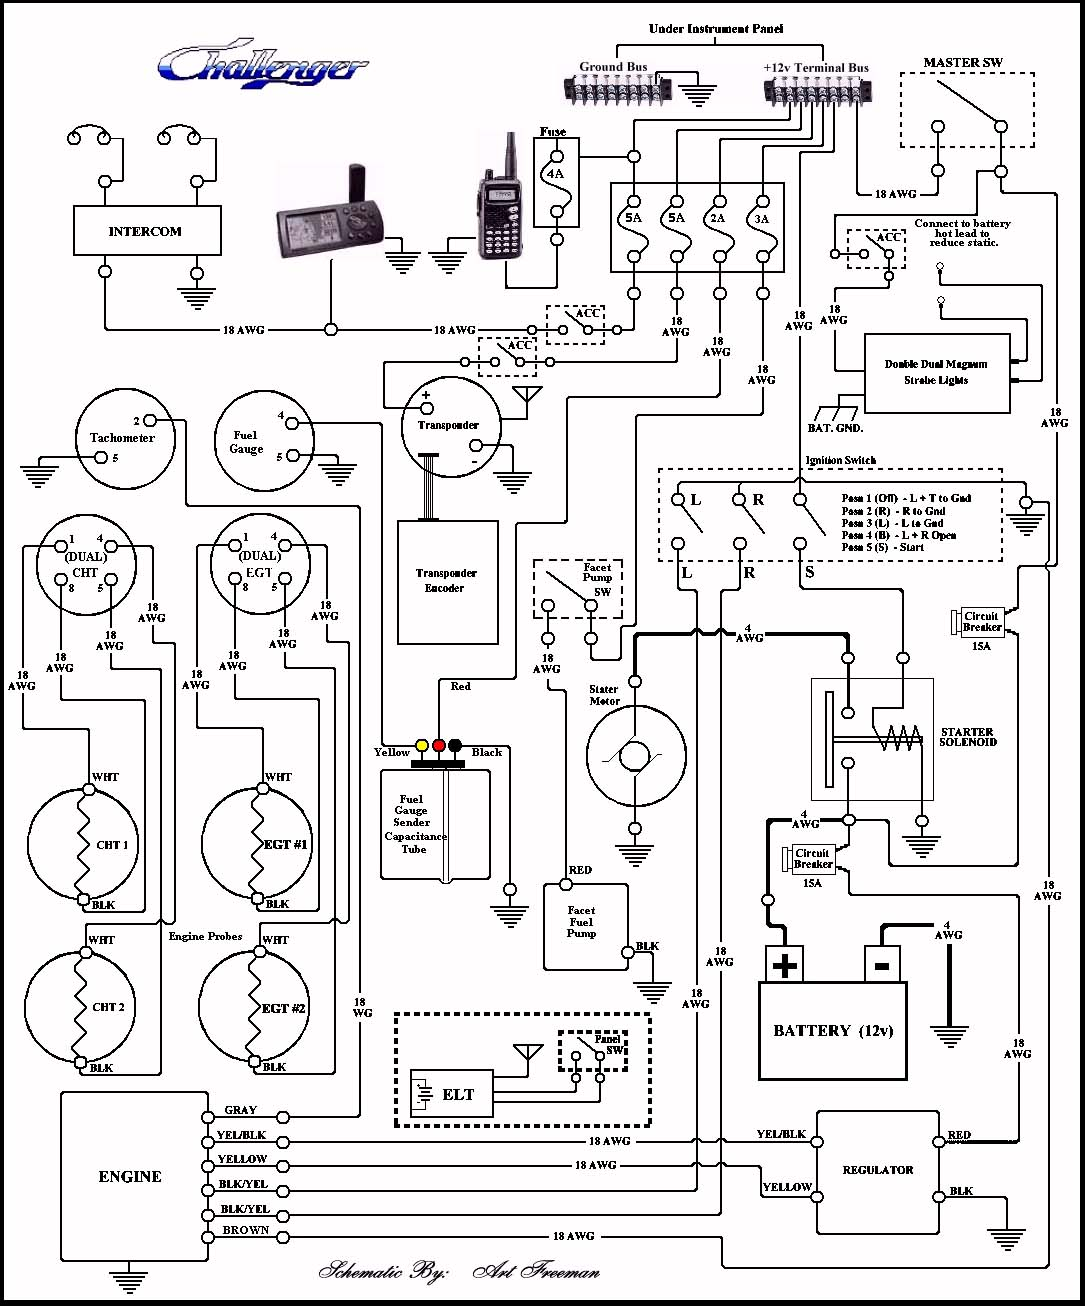 Schem_Analog basic panel wiring diagram wiring diagram simonand basic wiring diagram at mifinder.co